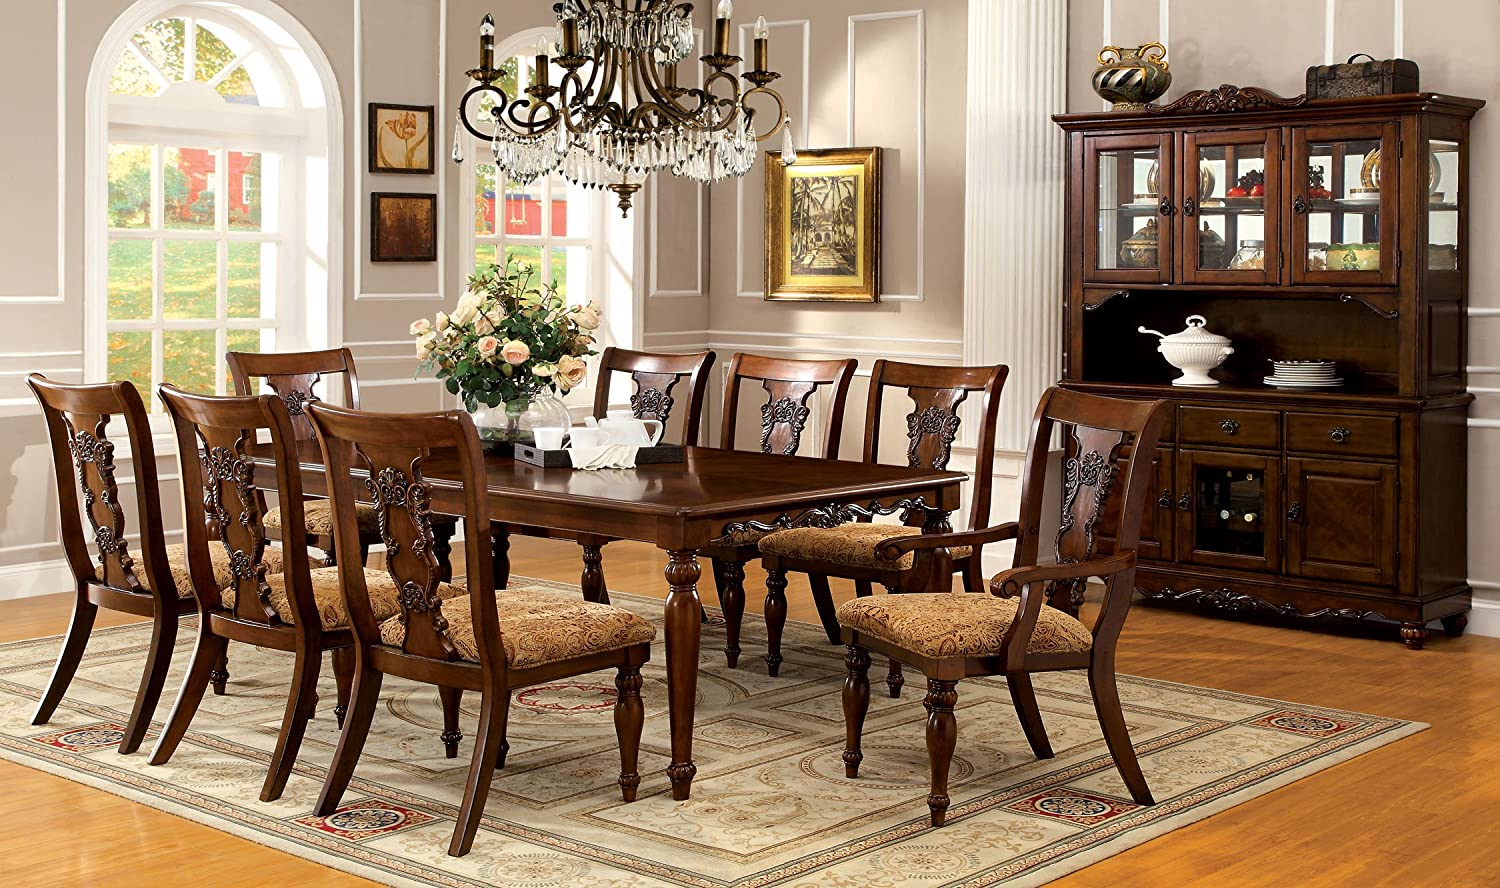 amazoncom furniture of america voltaire 9piece formal dining table set with 18inch expandable leaf dark oak finish table u0026 chair sets